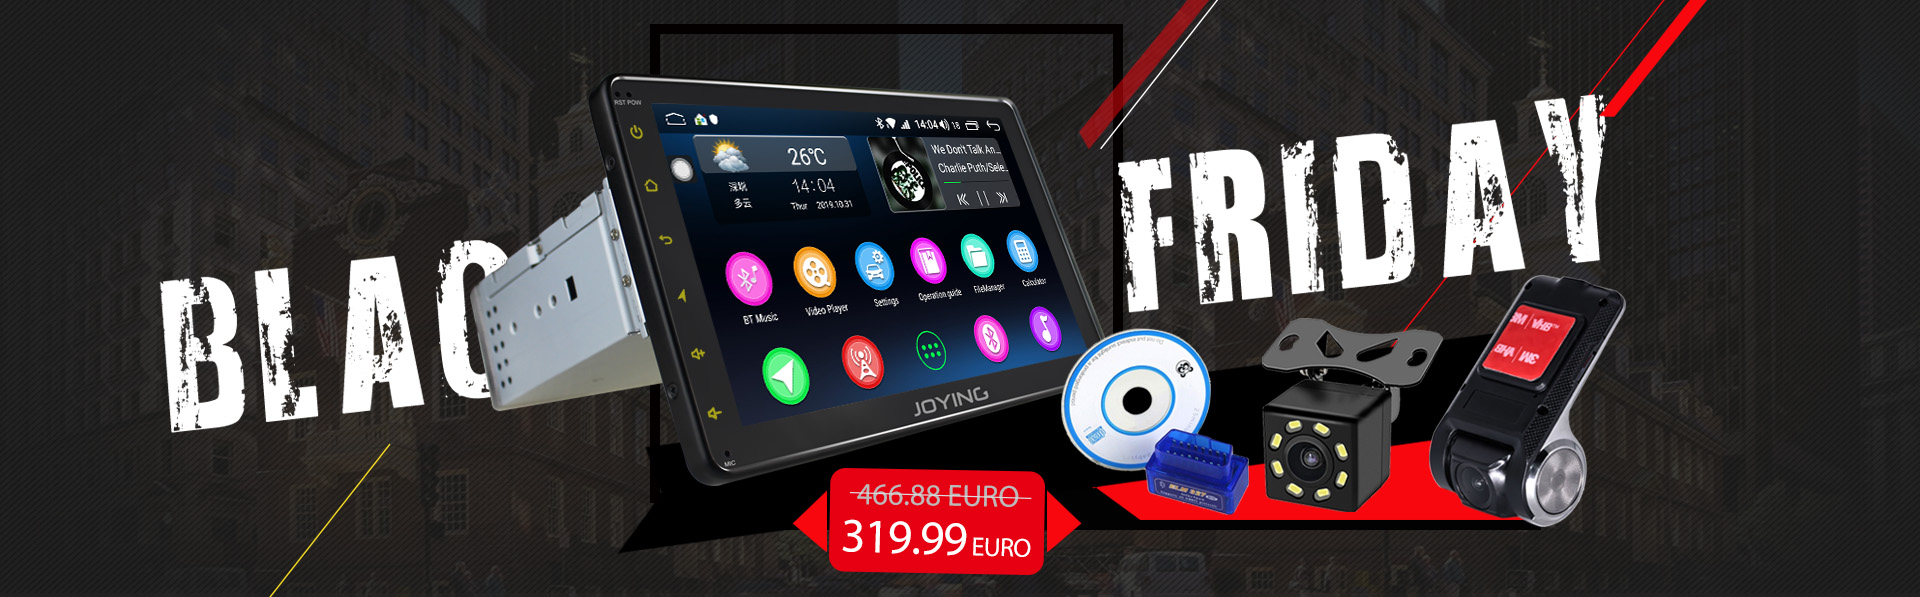 double din android auto, hd radio android 8.1, double din gps bluetooth, single din apple carplay